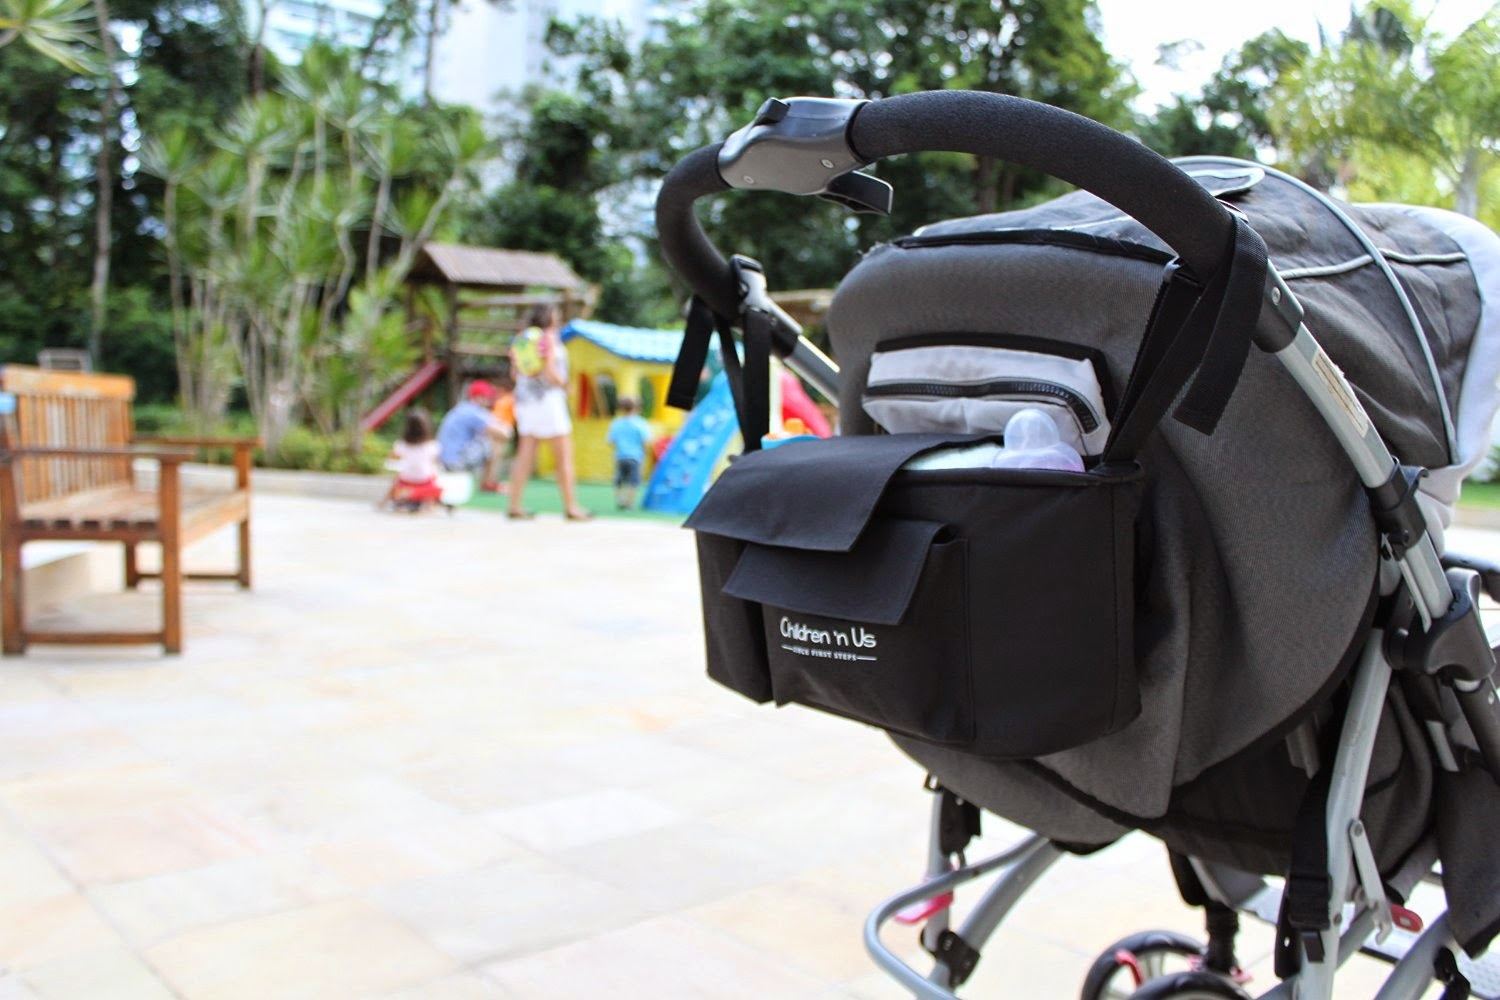 Children 'n Us  offers one of the largest Stroller organizer's of the Market!